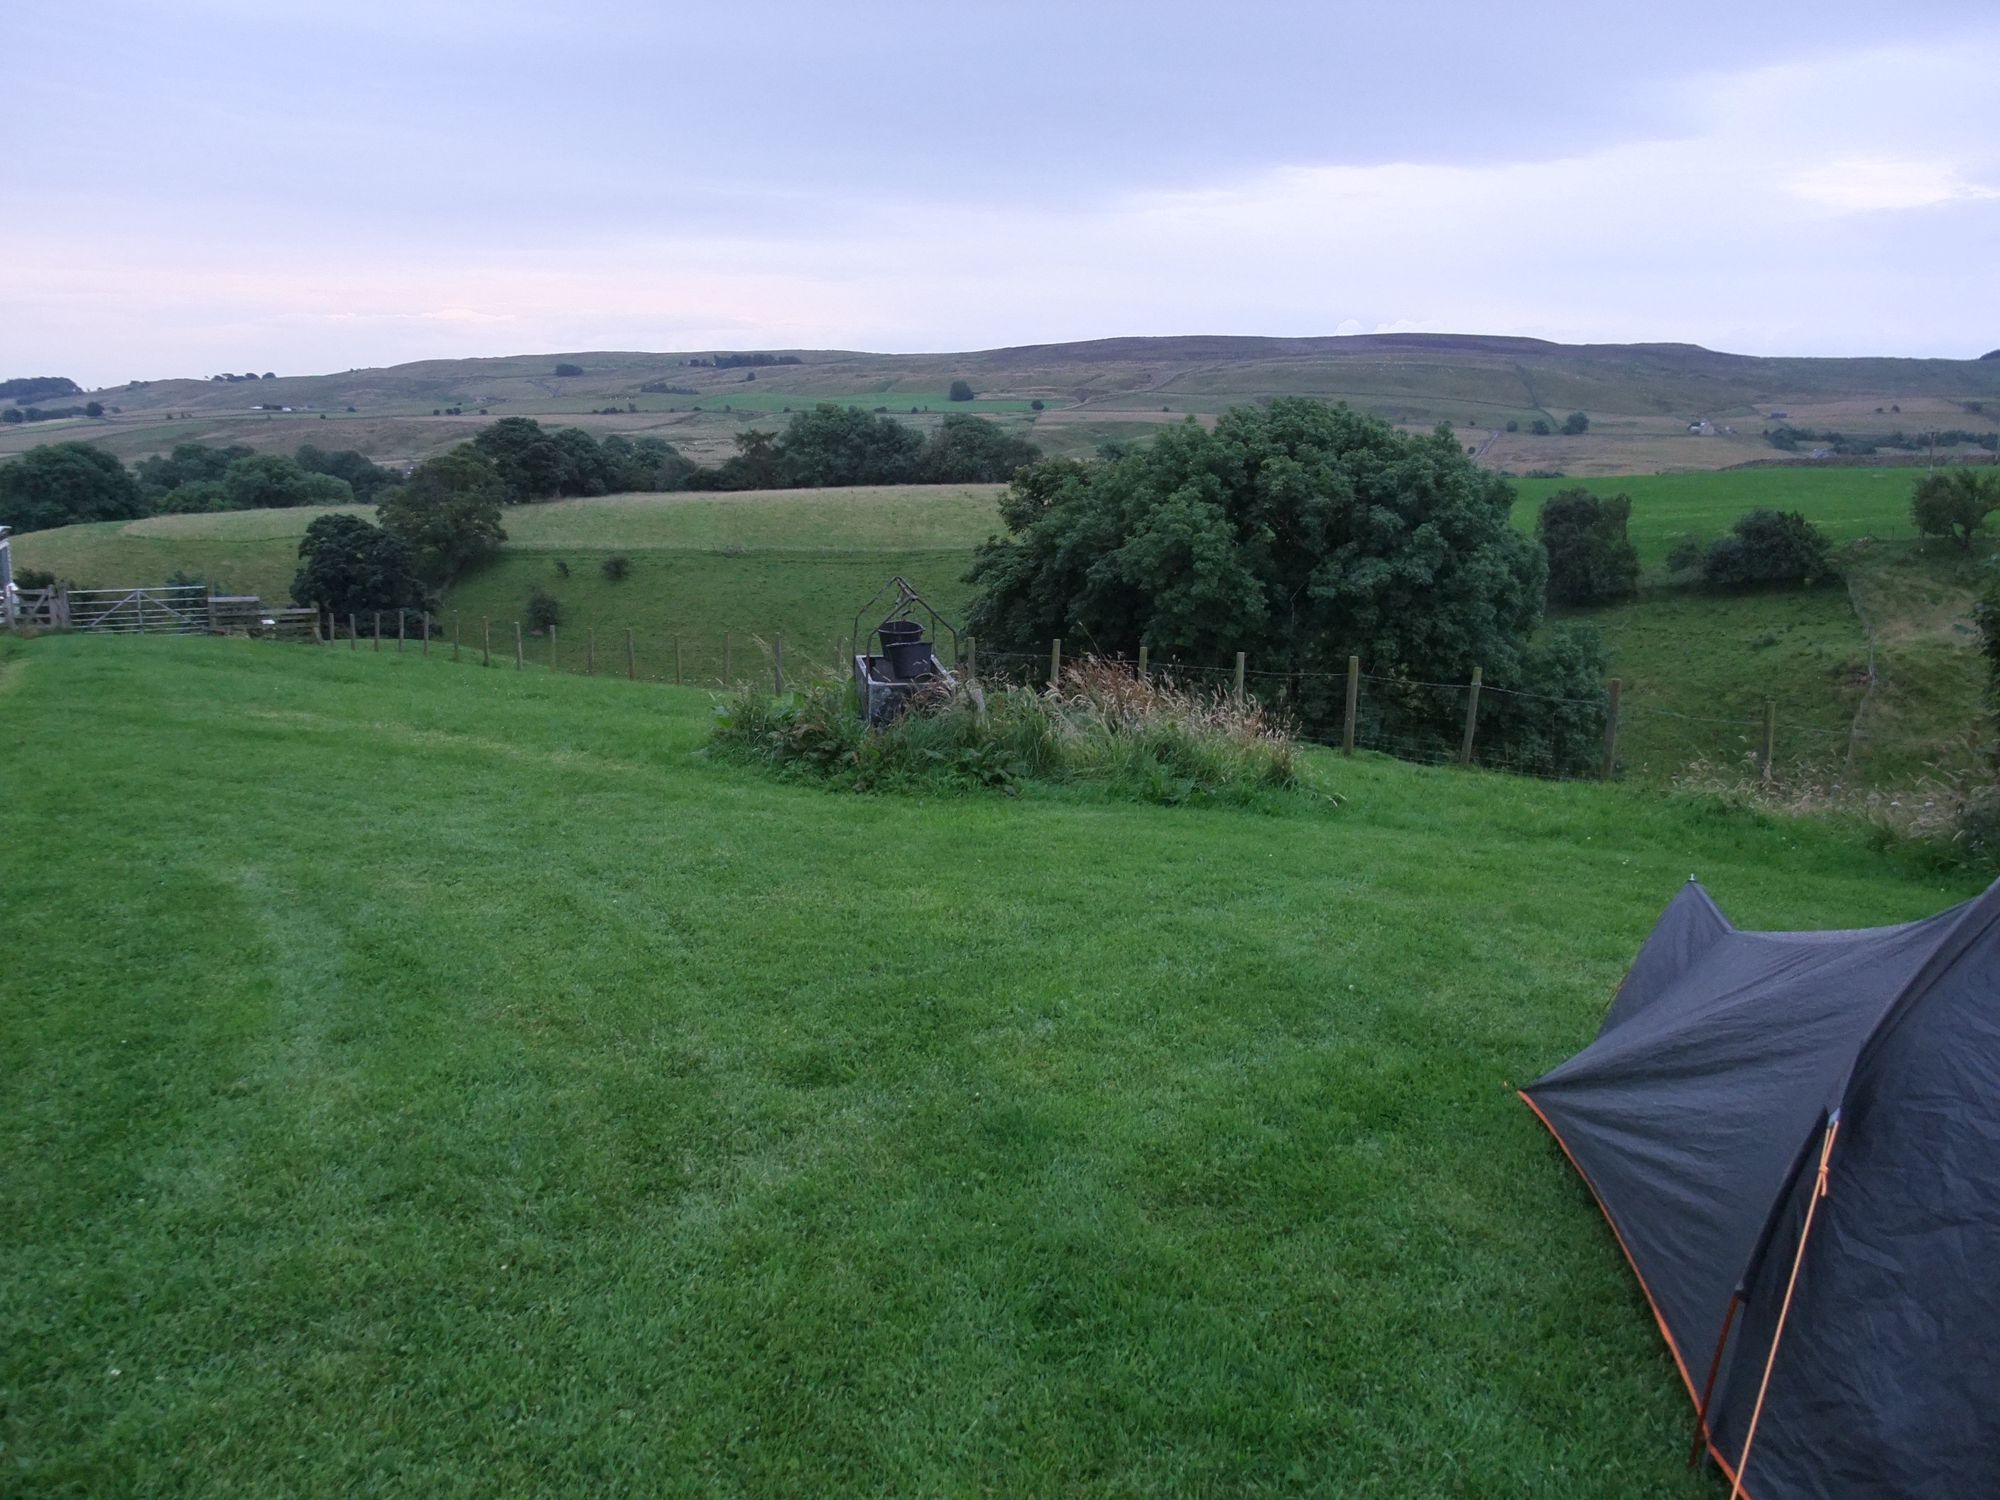 Campsites in the North Pennines Area of Outstanding Natural Beauty